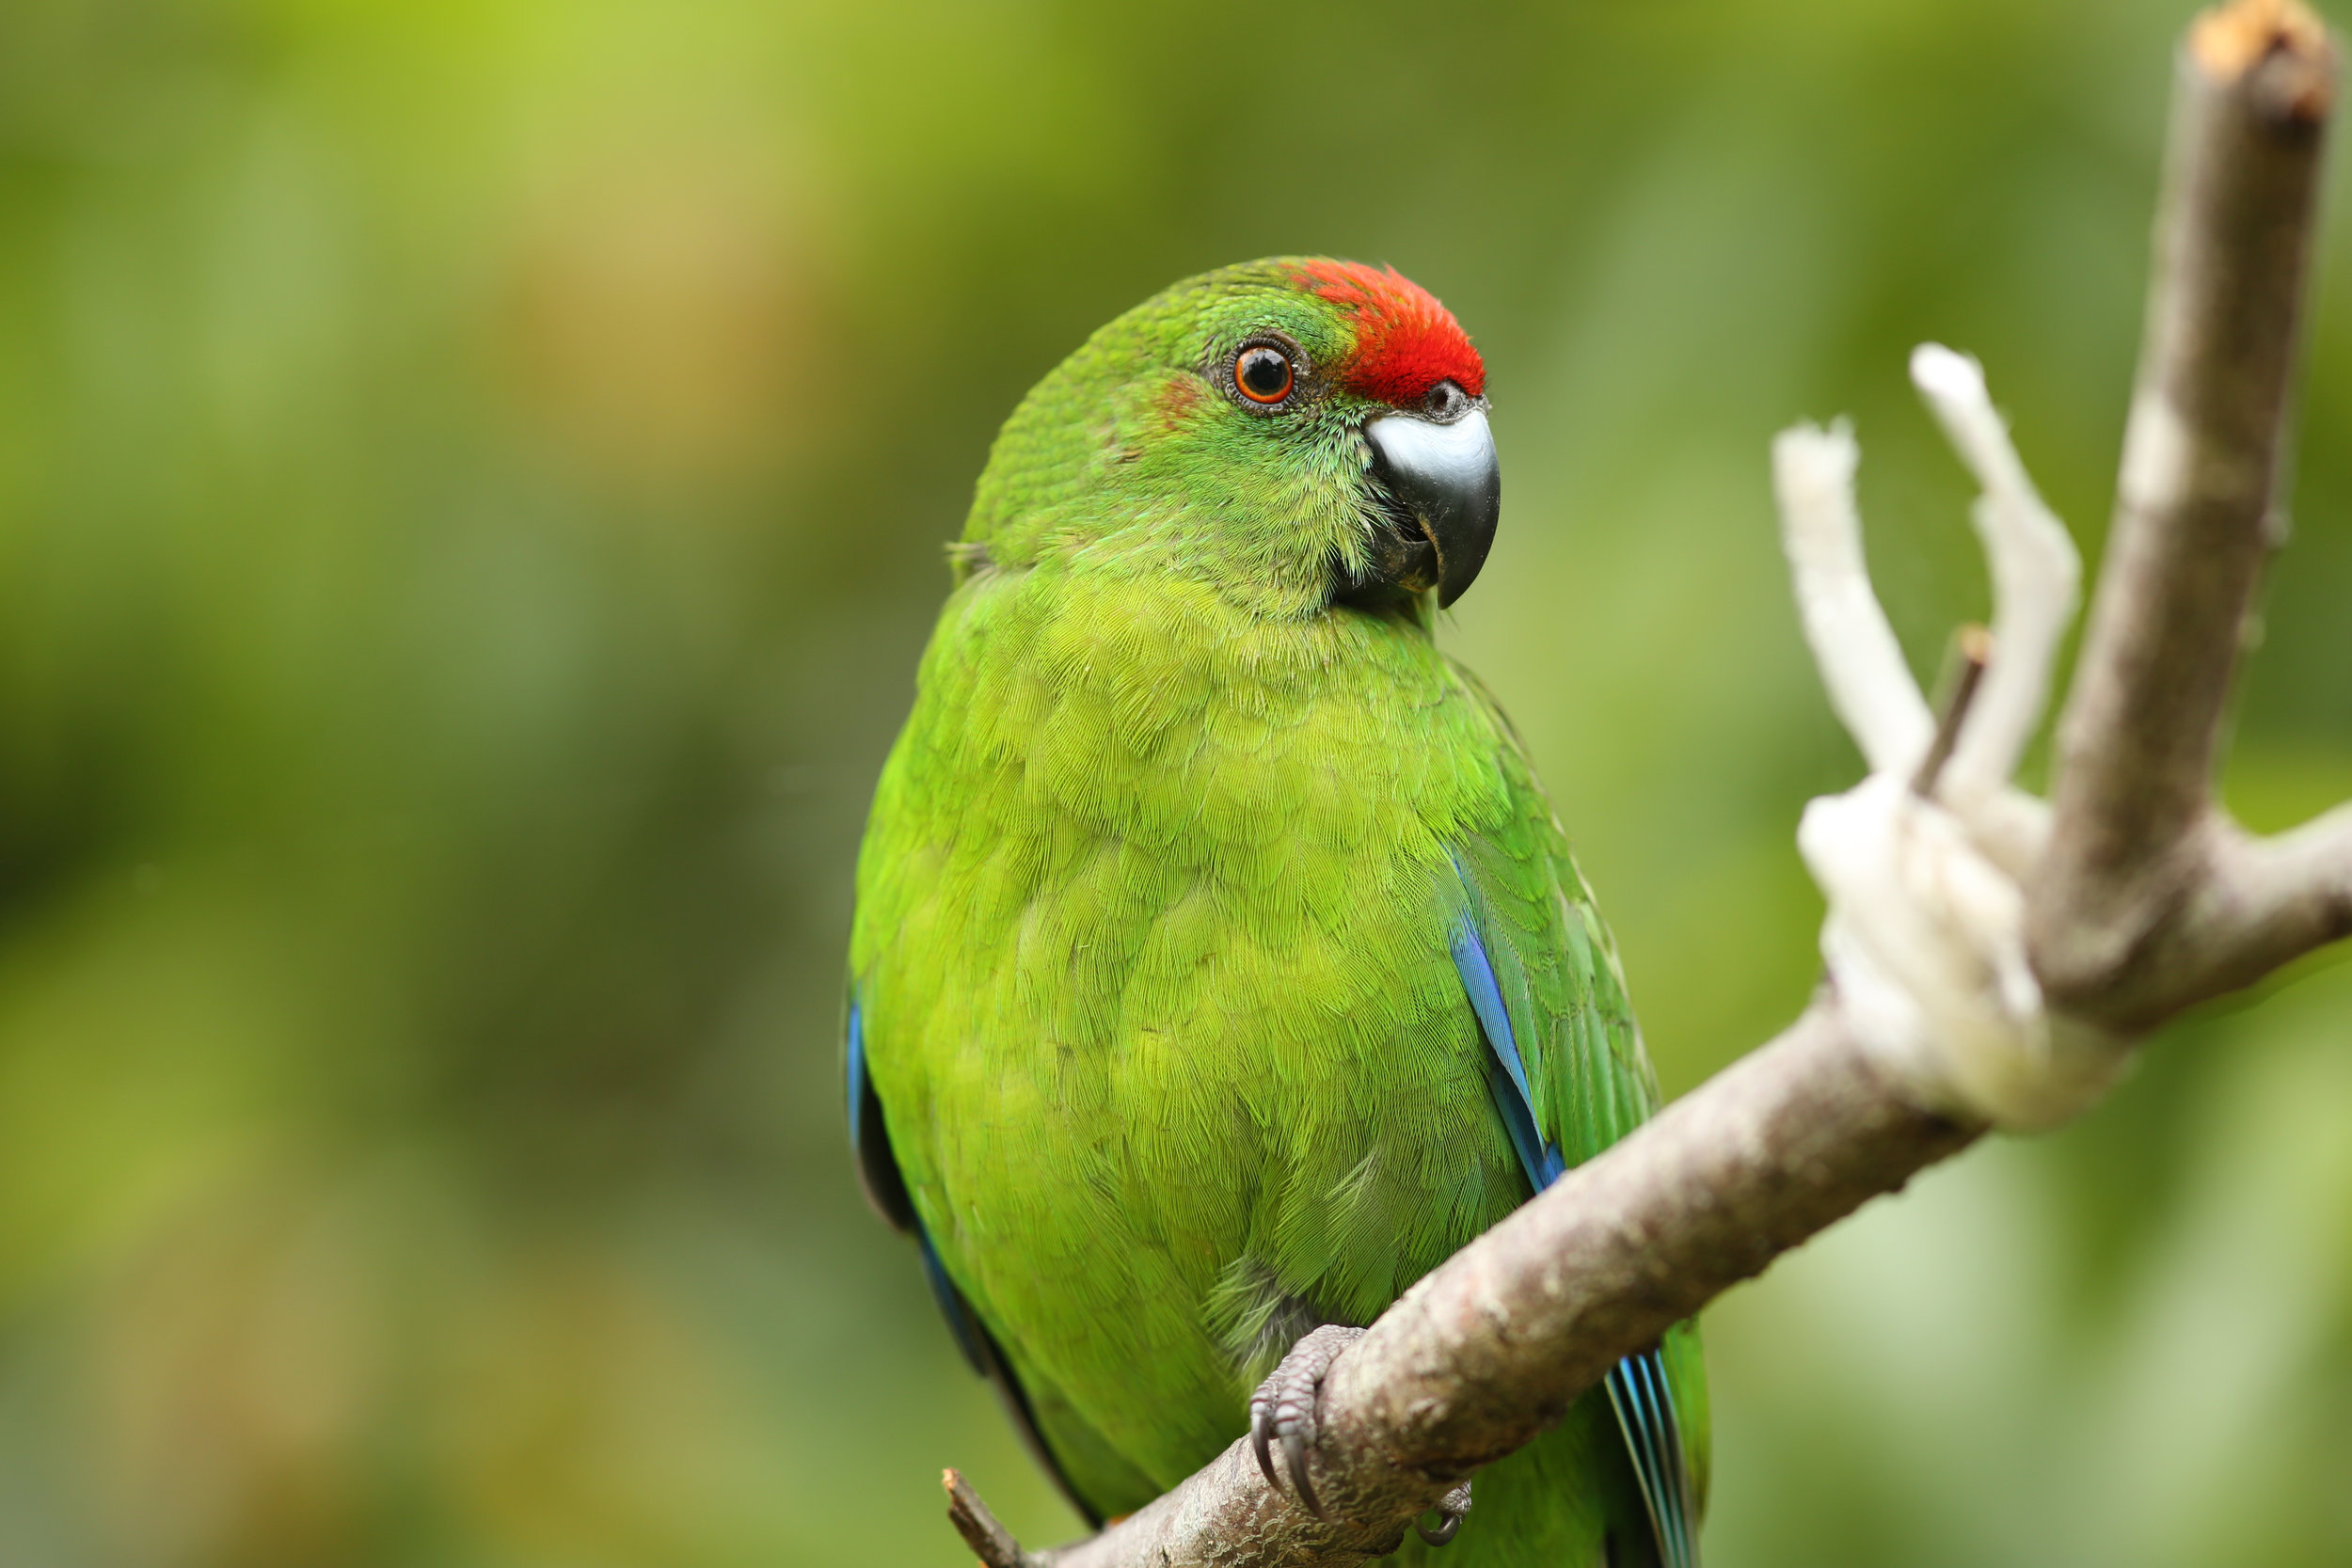 - Urgent action was required, with an installation of 75 predator-resistant nest sites at Phillip Island which lead to a relocation of 44 fledglings. Establishing a second population of green parrots will ensure the bird's long-term survival.The long-term future of the Norfolk Island Green Parrot depends on ongoing support for a recovery project.Birdlife Australia is calling on the Australian Government to implement priority actions - monitoring and management, to recover the Critically Endangered Norfolk Island Green Parrot.